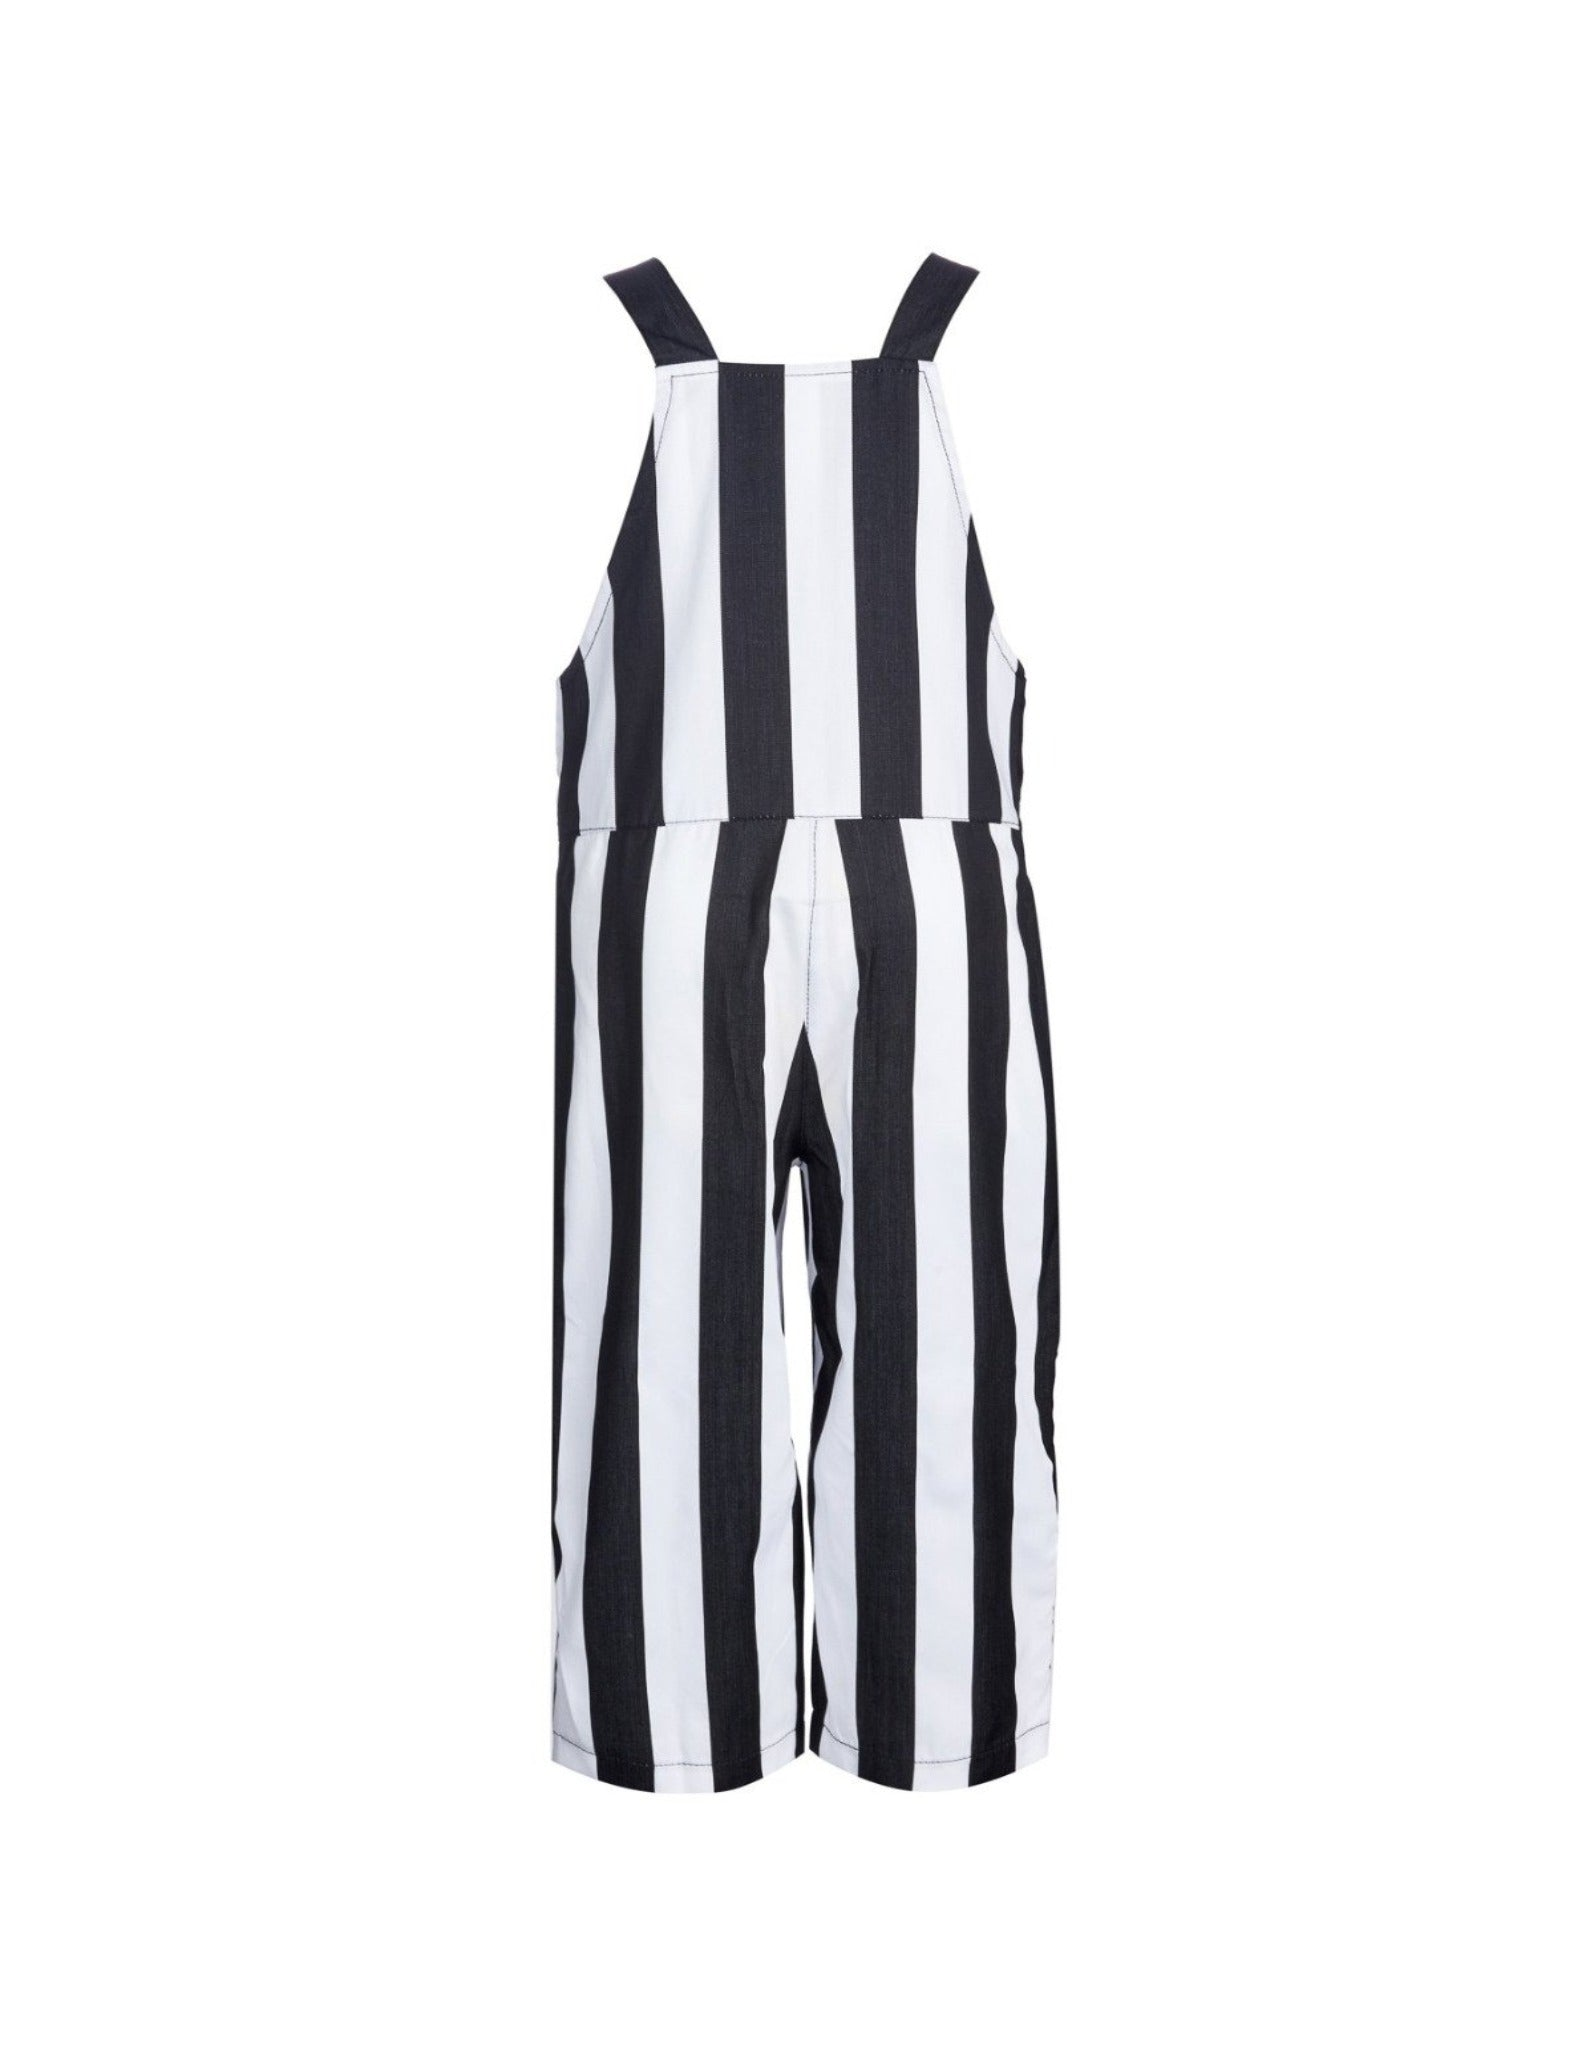 JUMPSUIT IN BLACK AND WHITE STRIPES